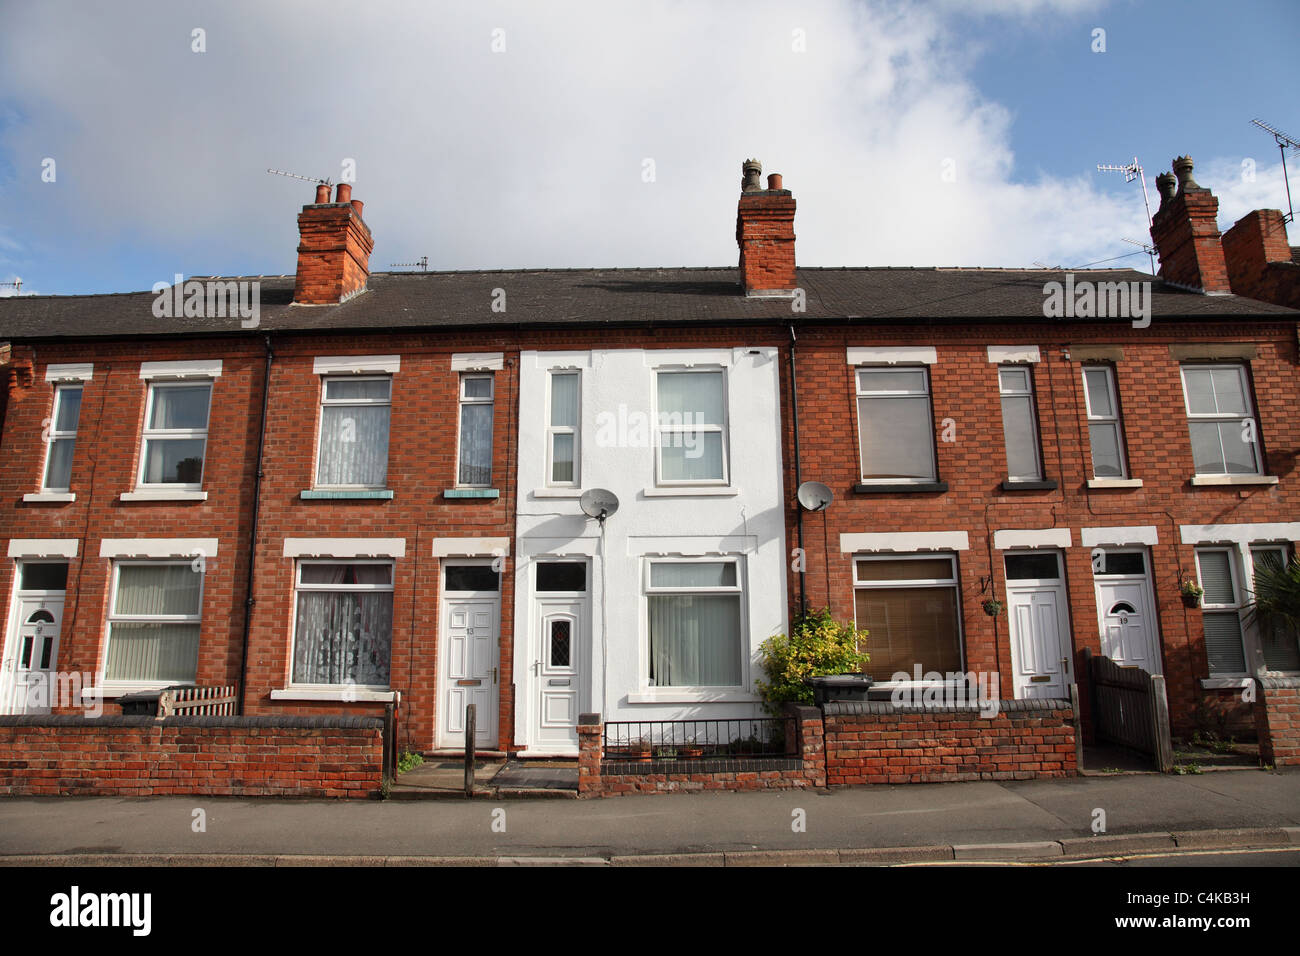 Terraced houses in arnold nottingham england u k stock for Terrace homes